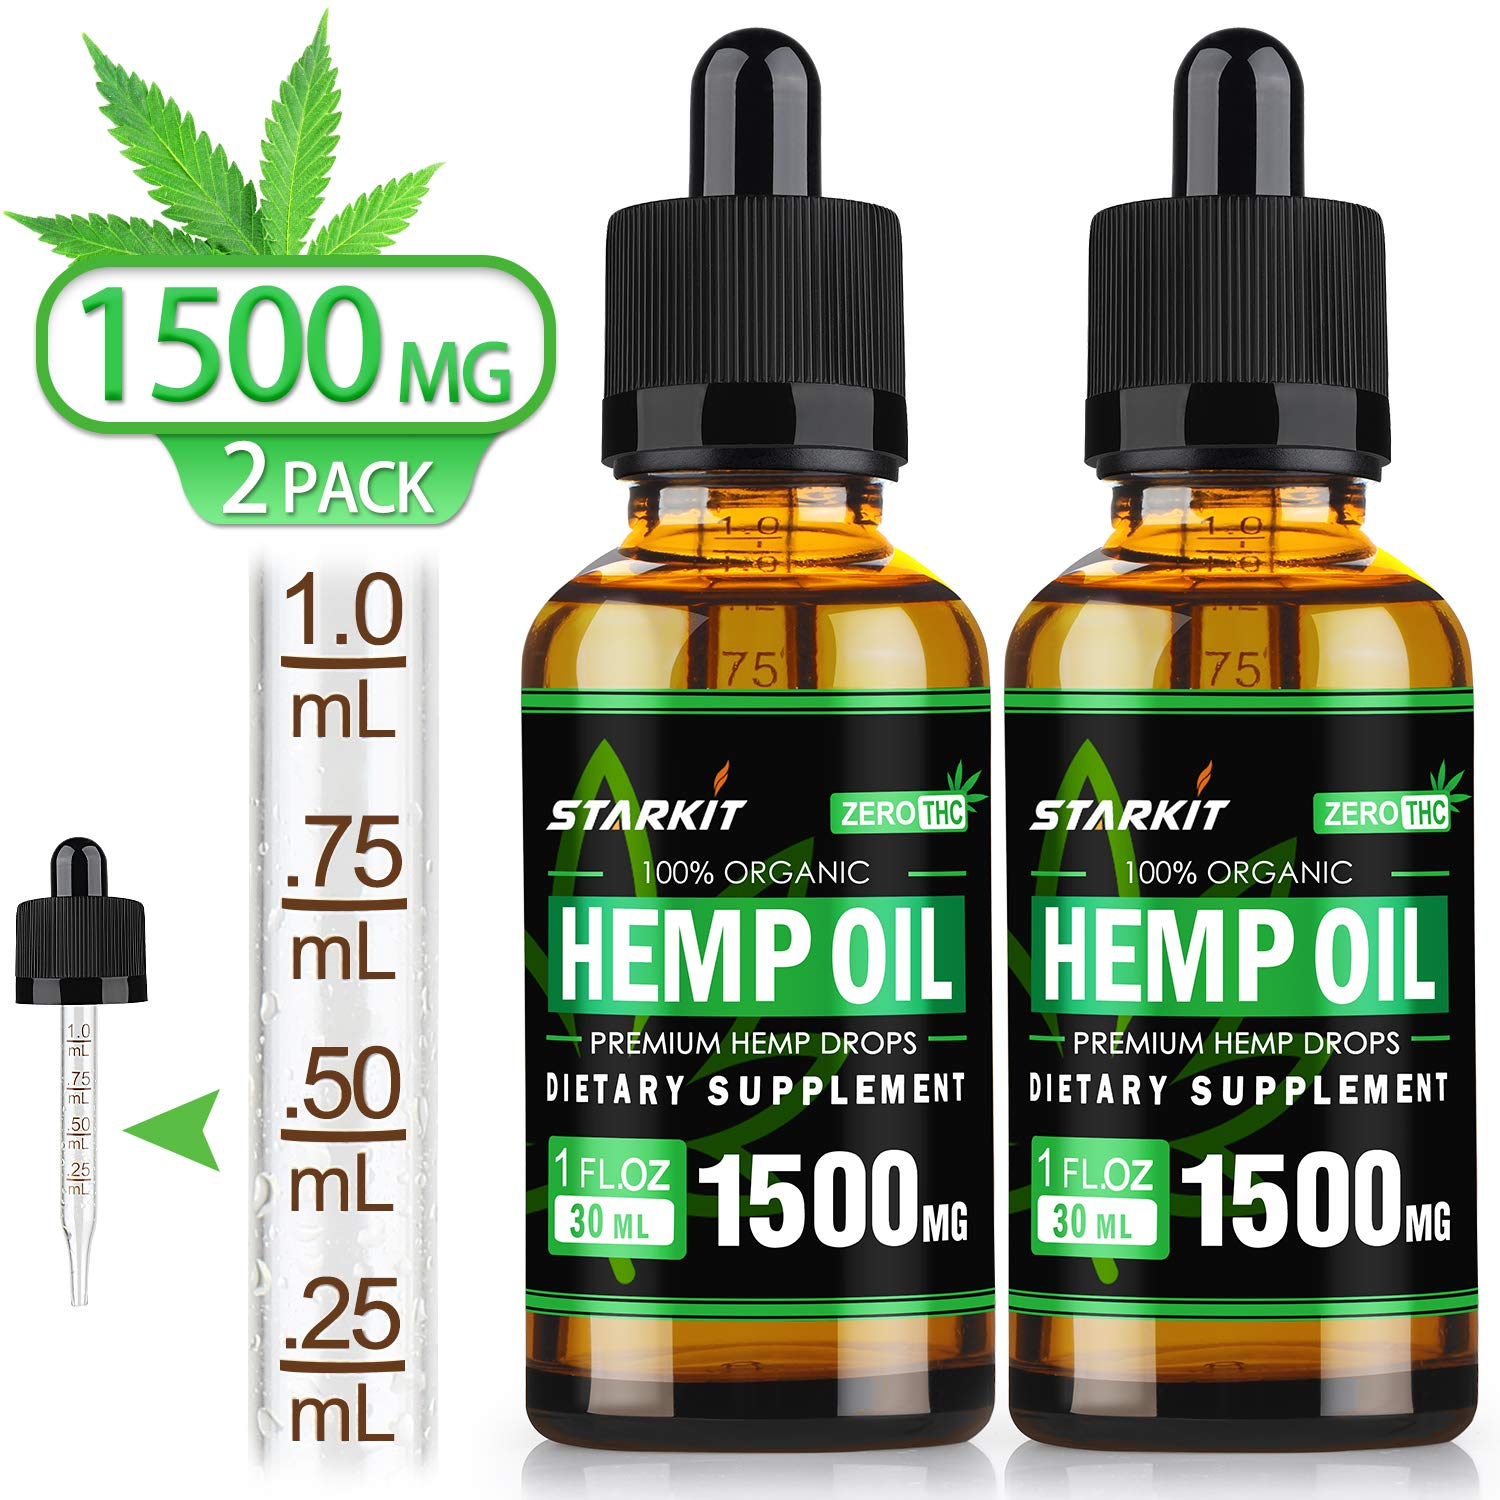 2x30ml - Hemp Oil Extract 1500mg Natural for Pain Anxiety & Stress Relief, Better Sleep, Mood Support, STARKIT Drops Rich in Fatty Acids Omega 3 6 9 from Organic Hemp Seed by STARKIT